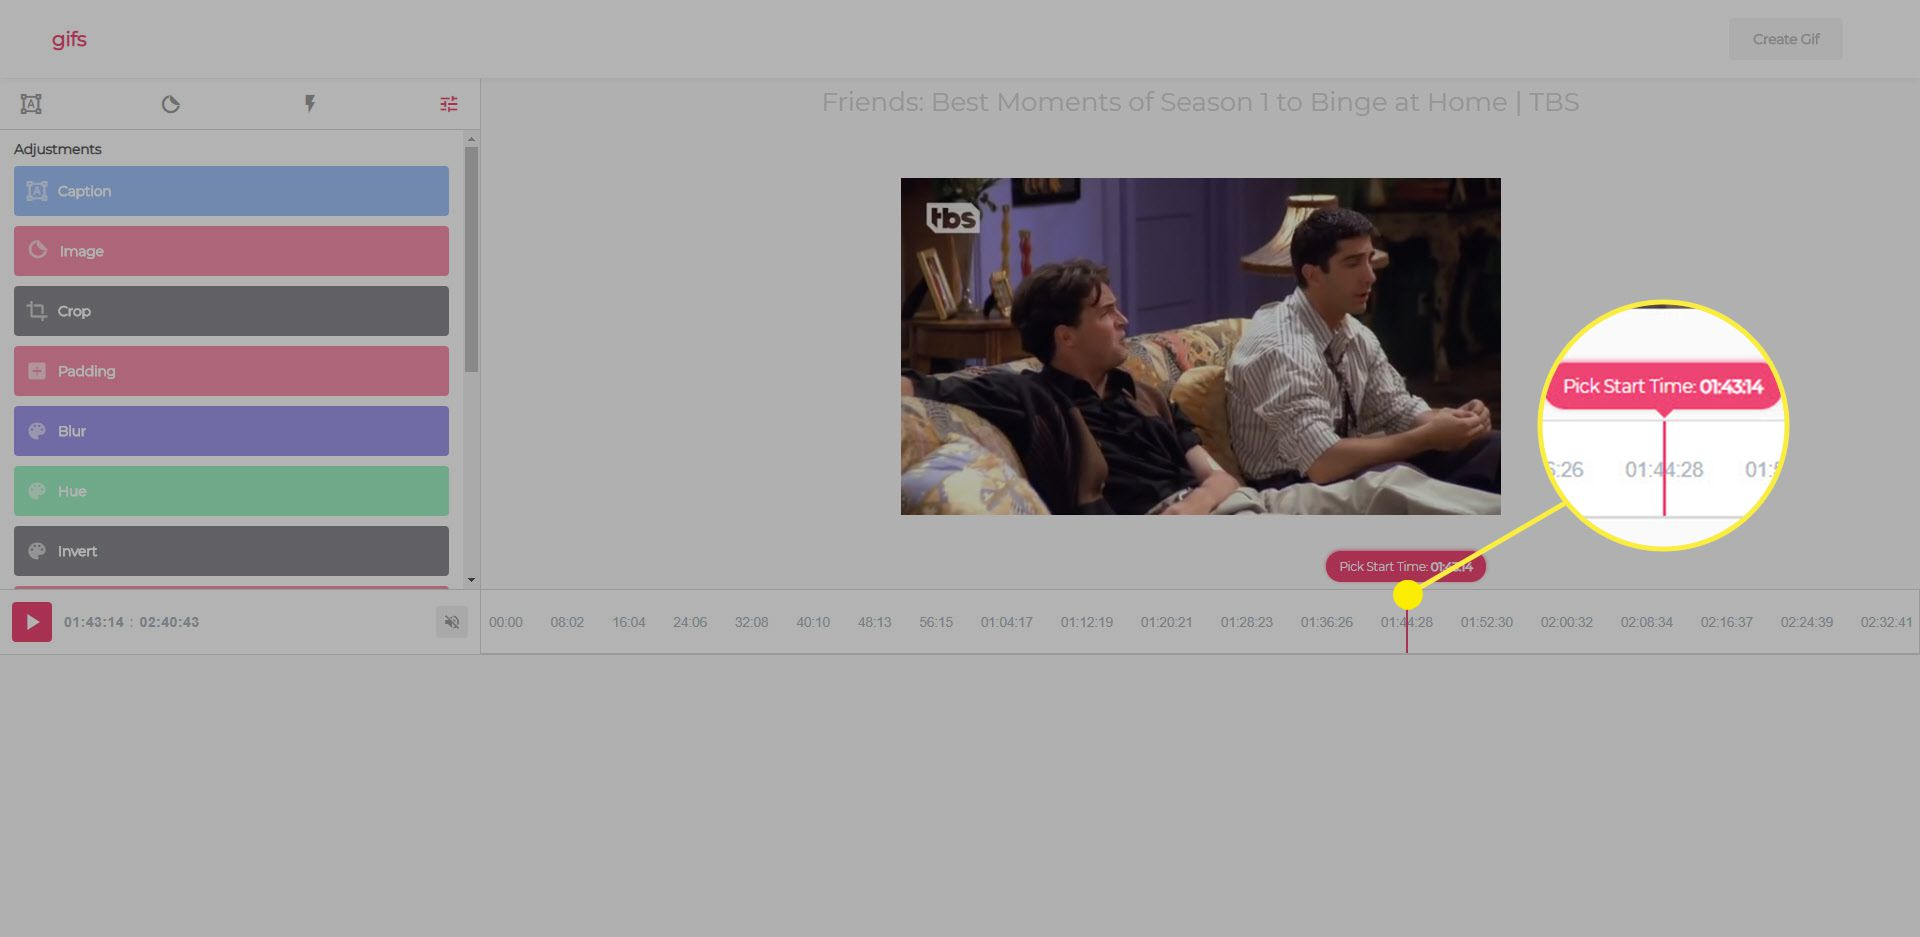 Picking the start time when making a GIF from a YouTube video with gif.com.